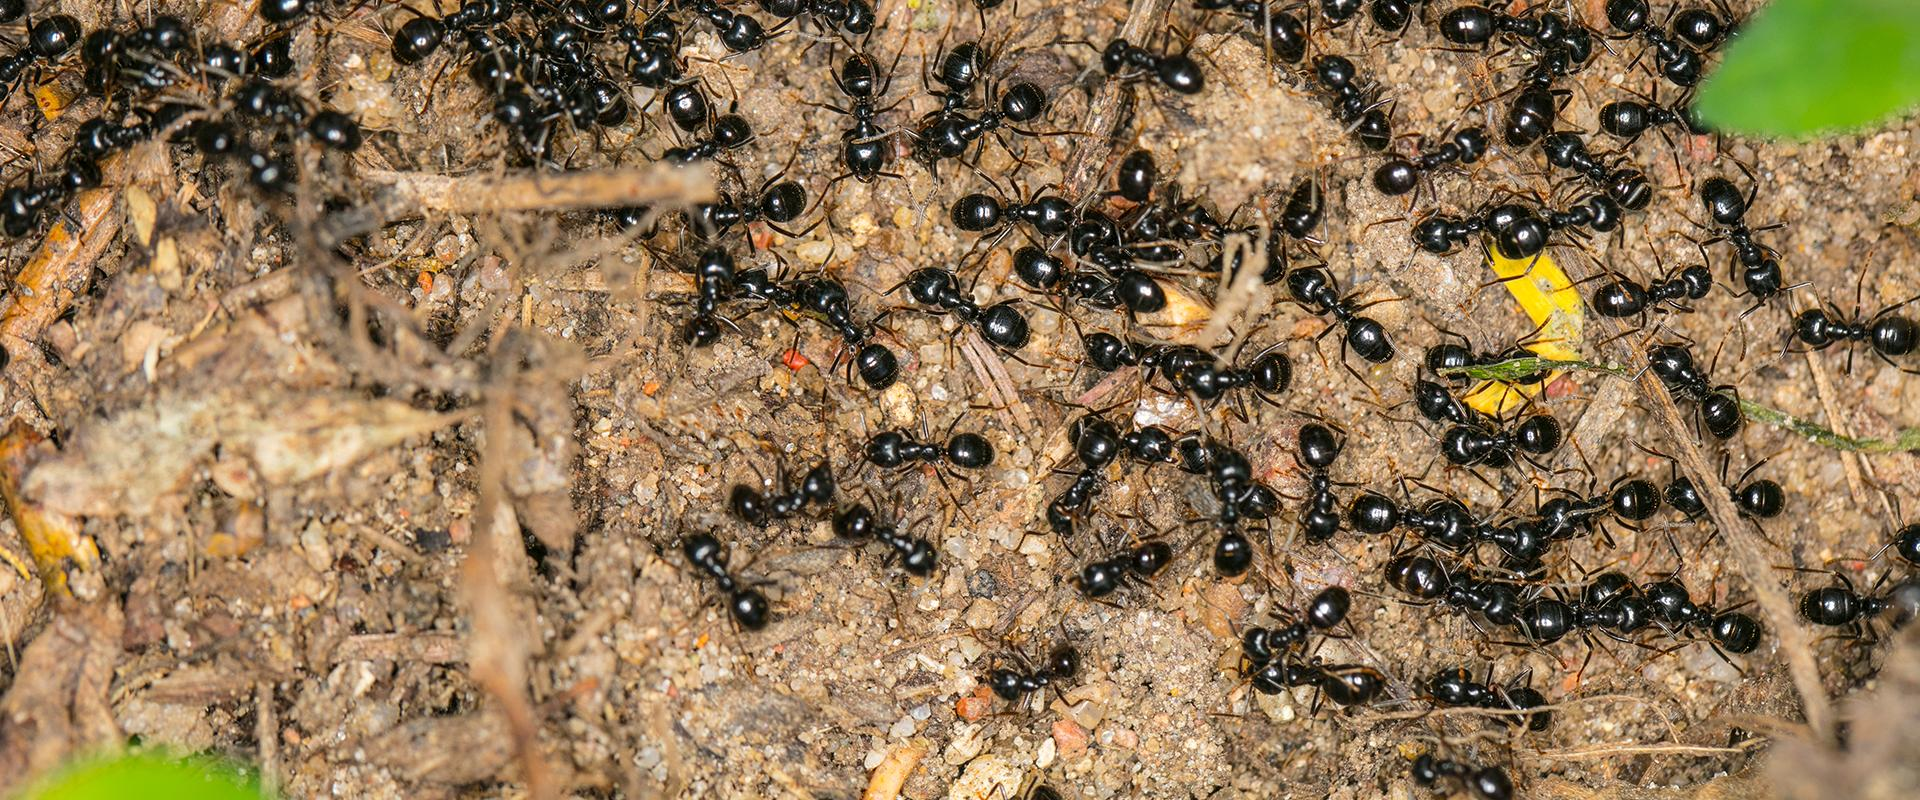 a large group of ants outside of a home in southwest arkansas